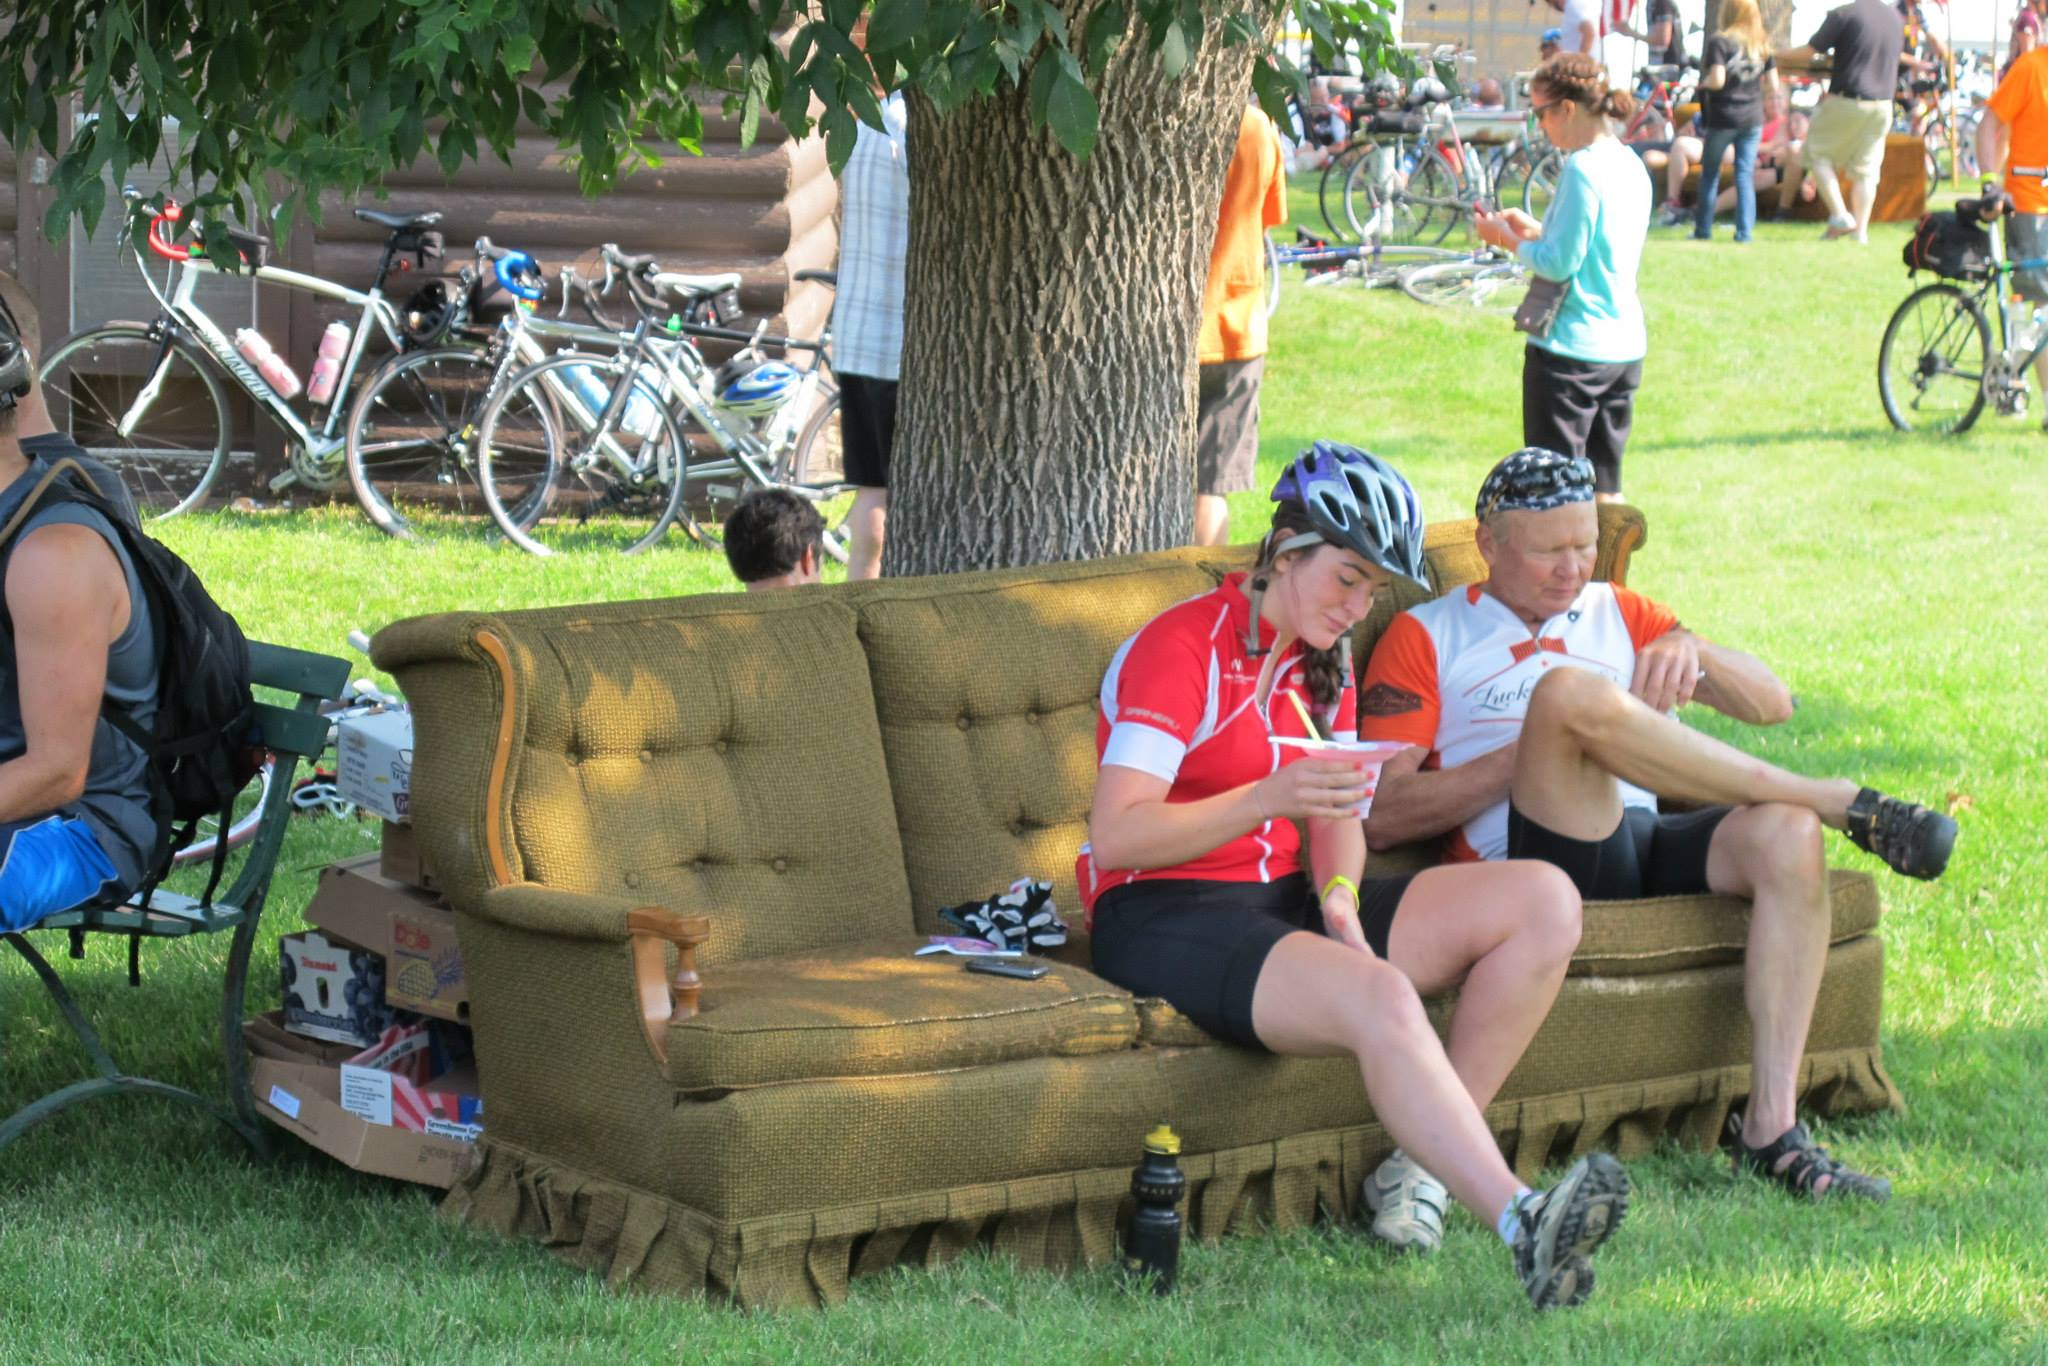 Pull up a couch in the shade of a tree and rest those weary legs.